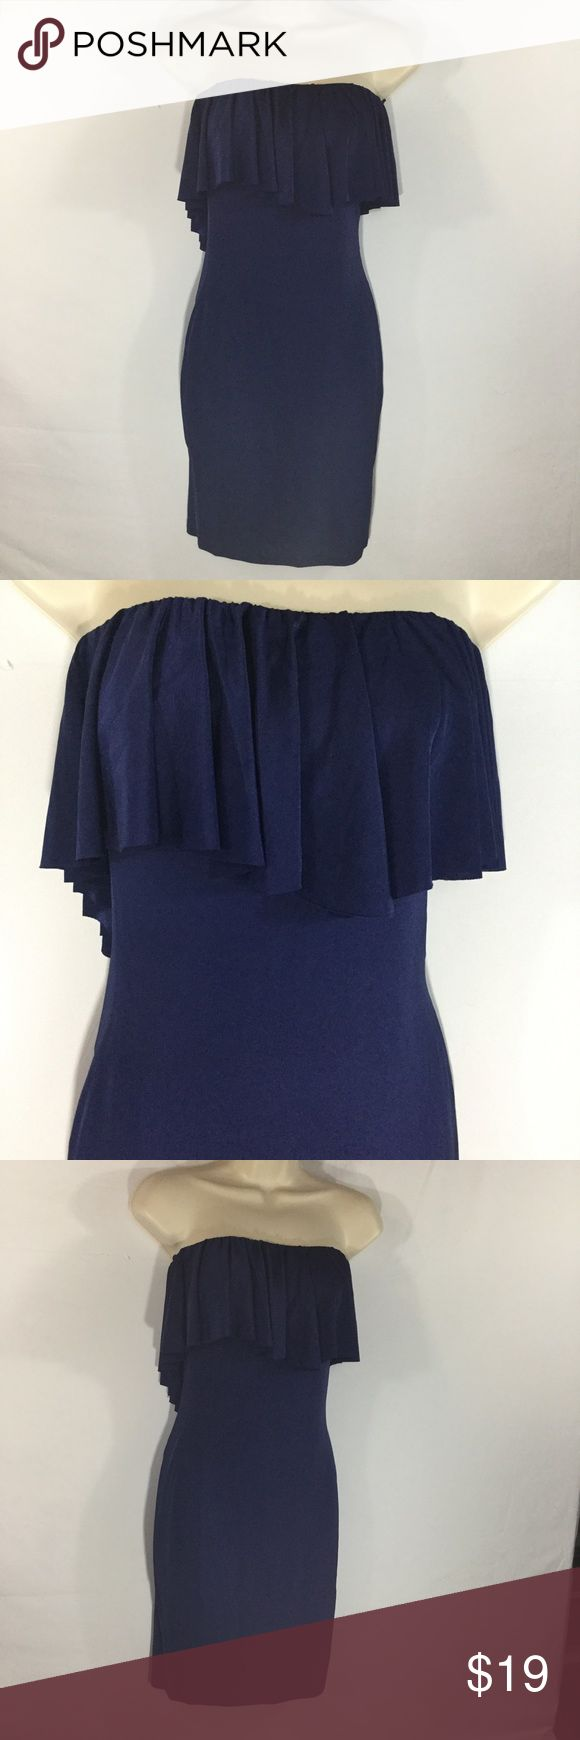 "🆕NAVY STRAPLESS RUFFLED CASUAL DRESS SIZE S Nordstrom's Dress the Population indigo blue, strapless, ruffled, casual mini dress. NWOT, Perfect Condition.  Size S Bust 13 1/4"" Waist 12"" Length 28"" 93% Polyester, 7% Lycra  Please comment with any questions and feel free to make an offer with the blue button! ⭐️ Purchase by noon EST and item(s) ship the same day!  Per Bundle items and save! Free shipping on all items over $20, just offer $6.00 less and I will accept. Happy Poshing 😊 Dress The…"